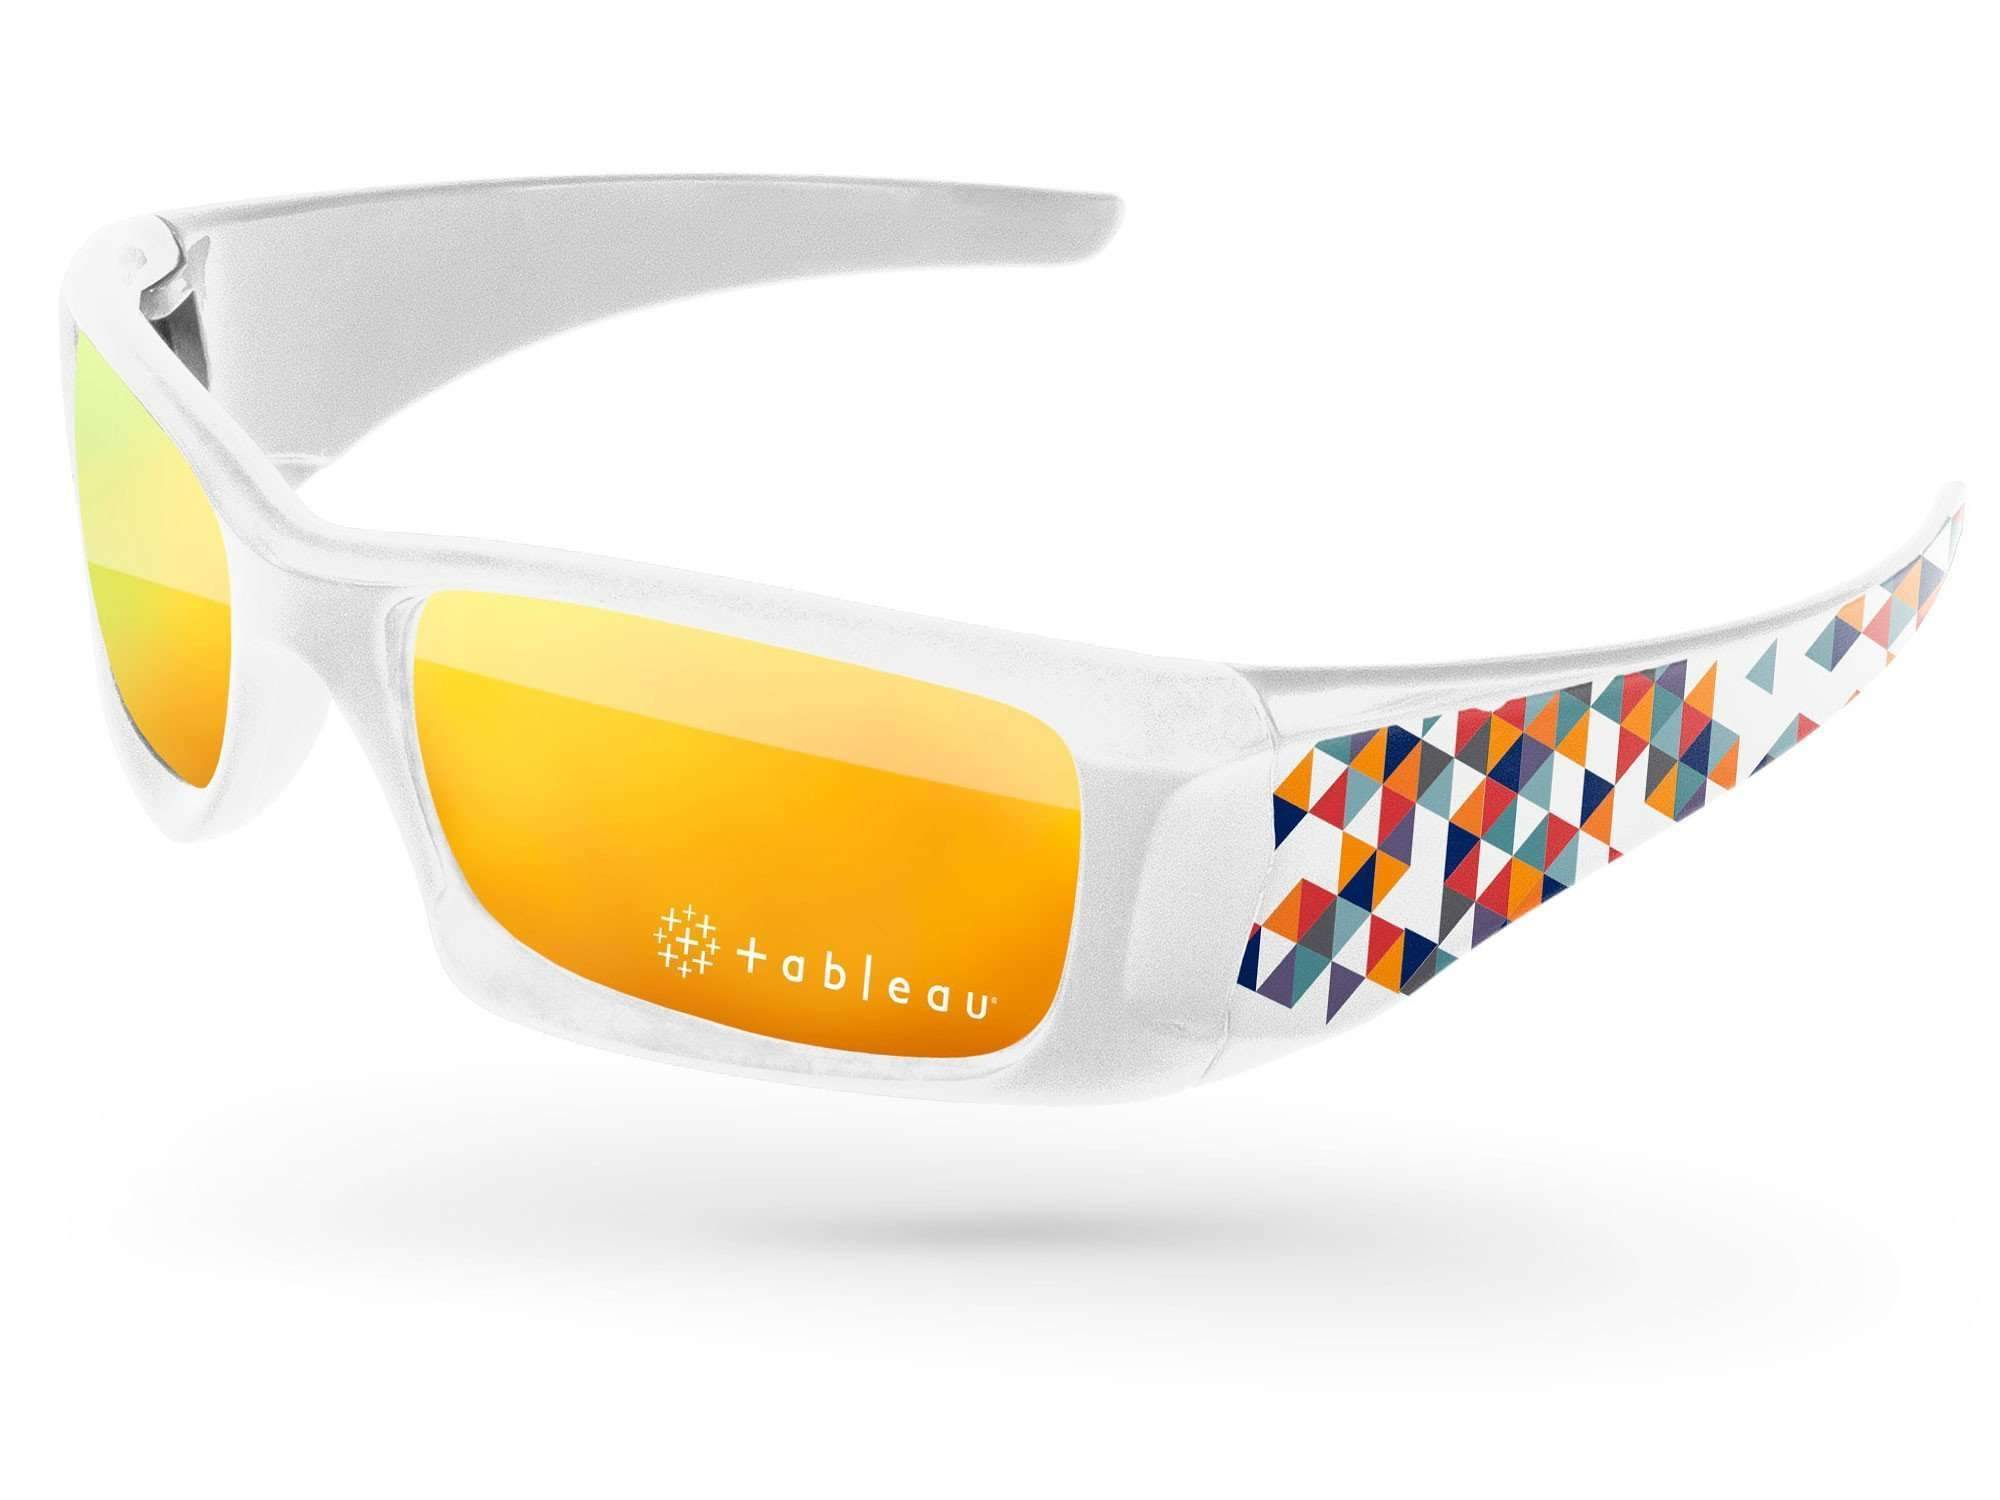 WM550 - Wrap Mirror Promotional Sunglasses w/ 1-color lens imprint & full-color arms heat transfer